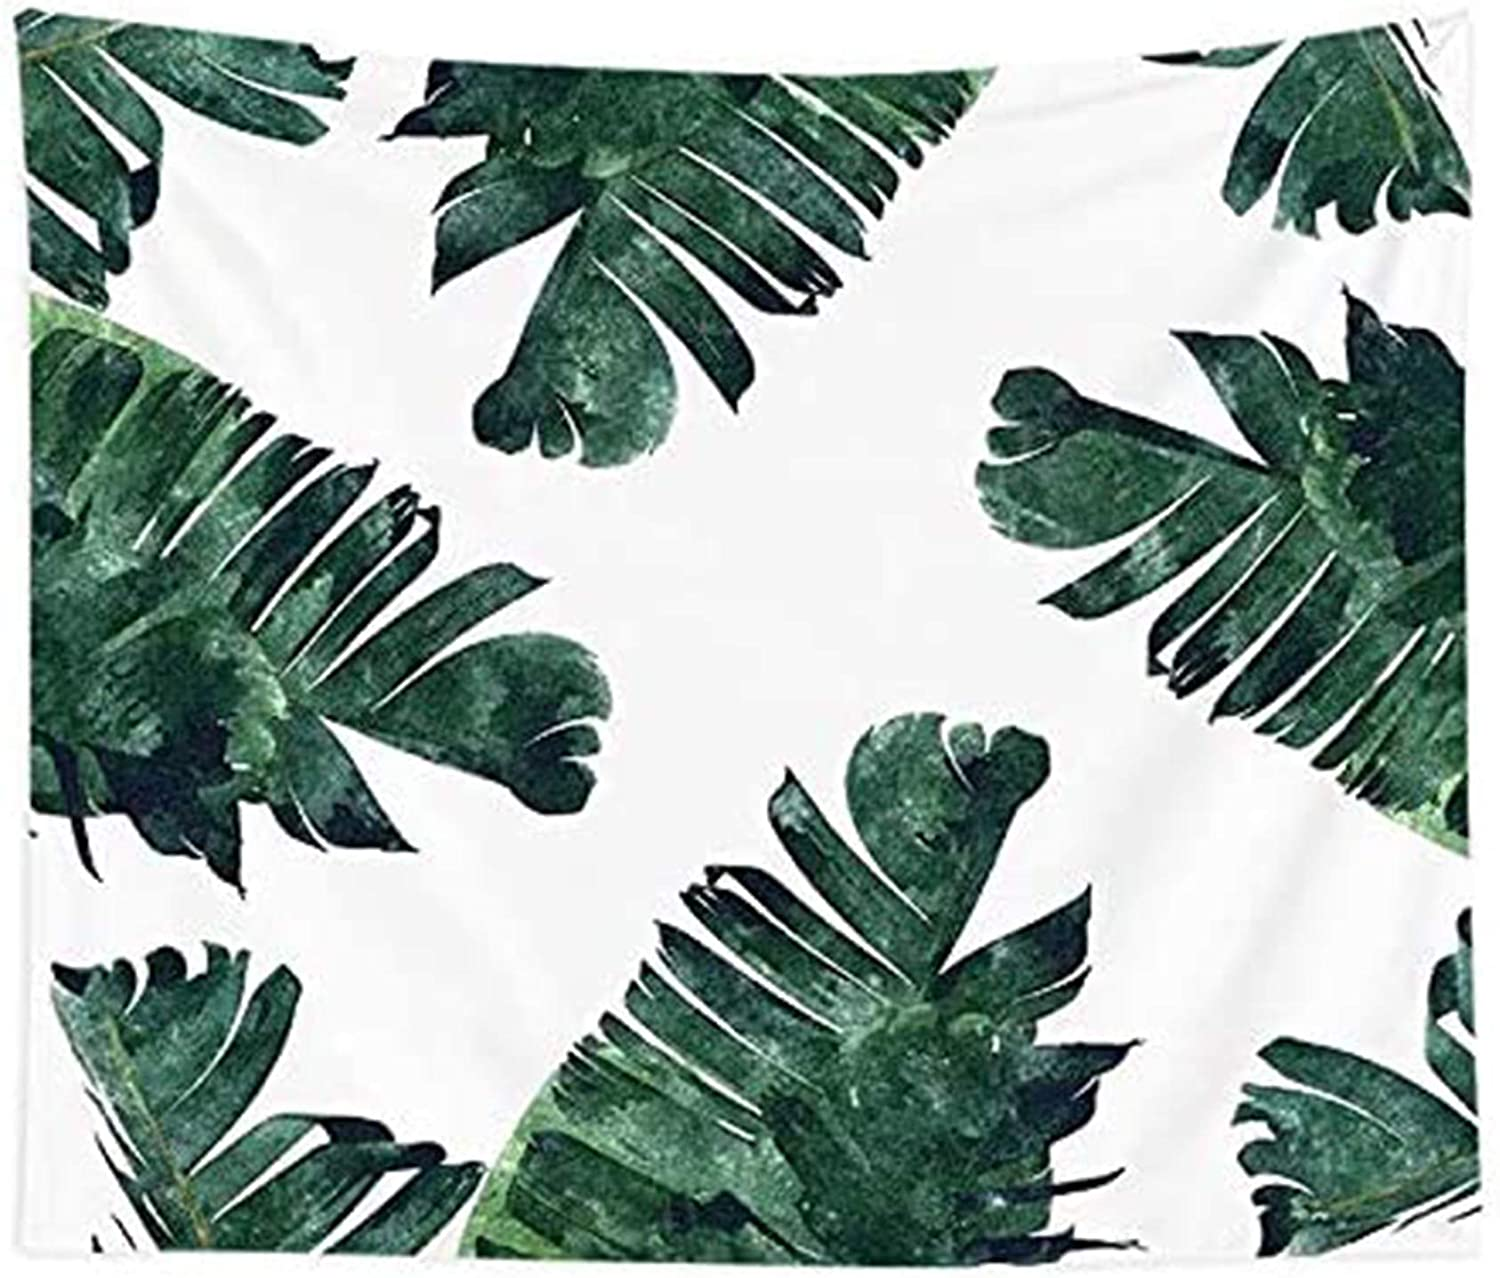 HVEST Watercolor Green Leaves Tapestry Tropical Watercolor Monstera Banana Leaves on White Background Tapestry for Bedroom Living Room Dorm Home Party Art Decor Blanket,59Wx51H inches